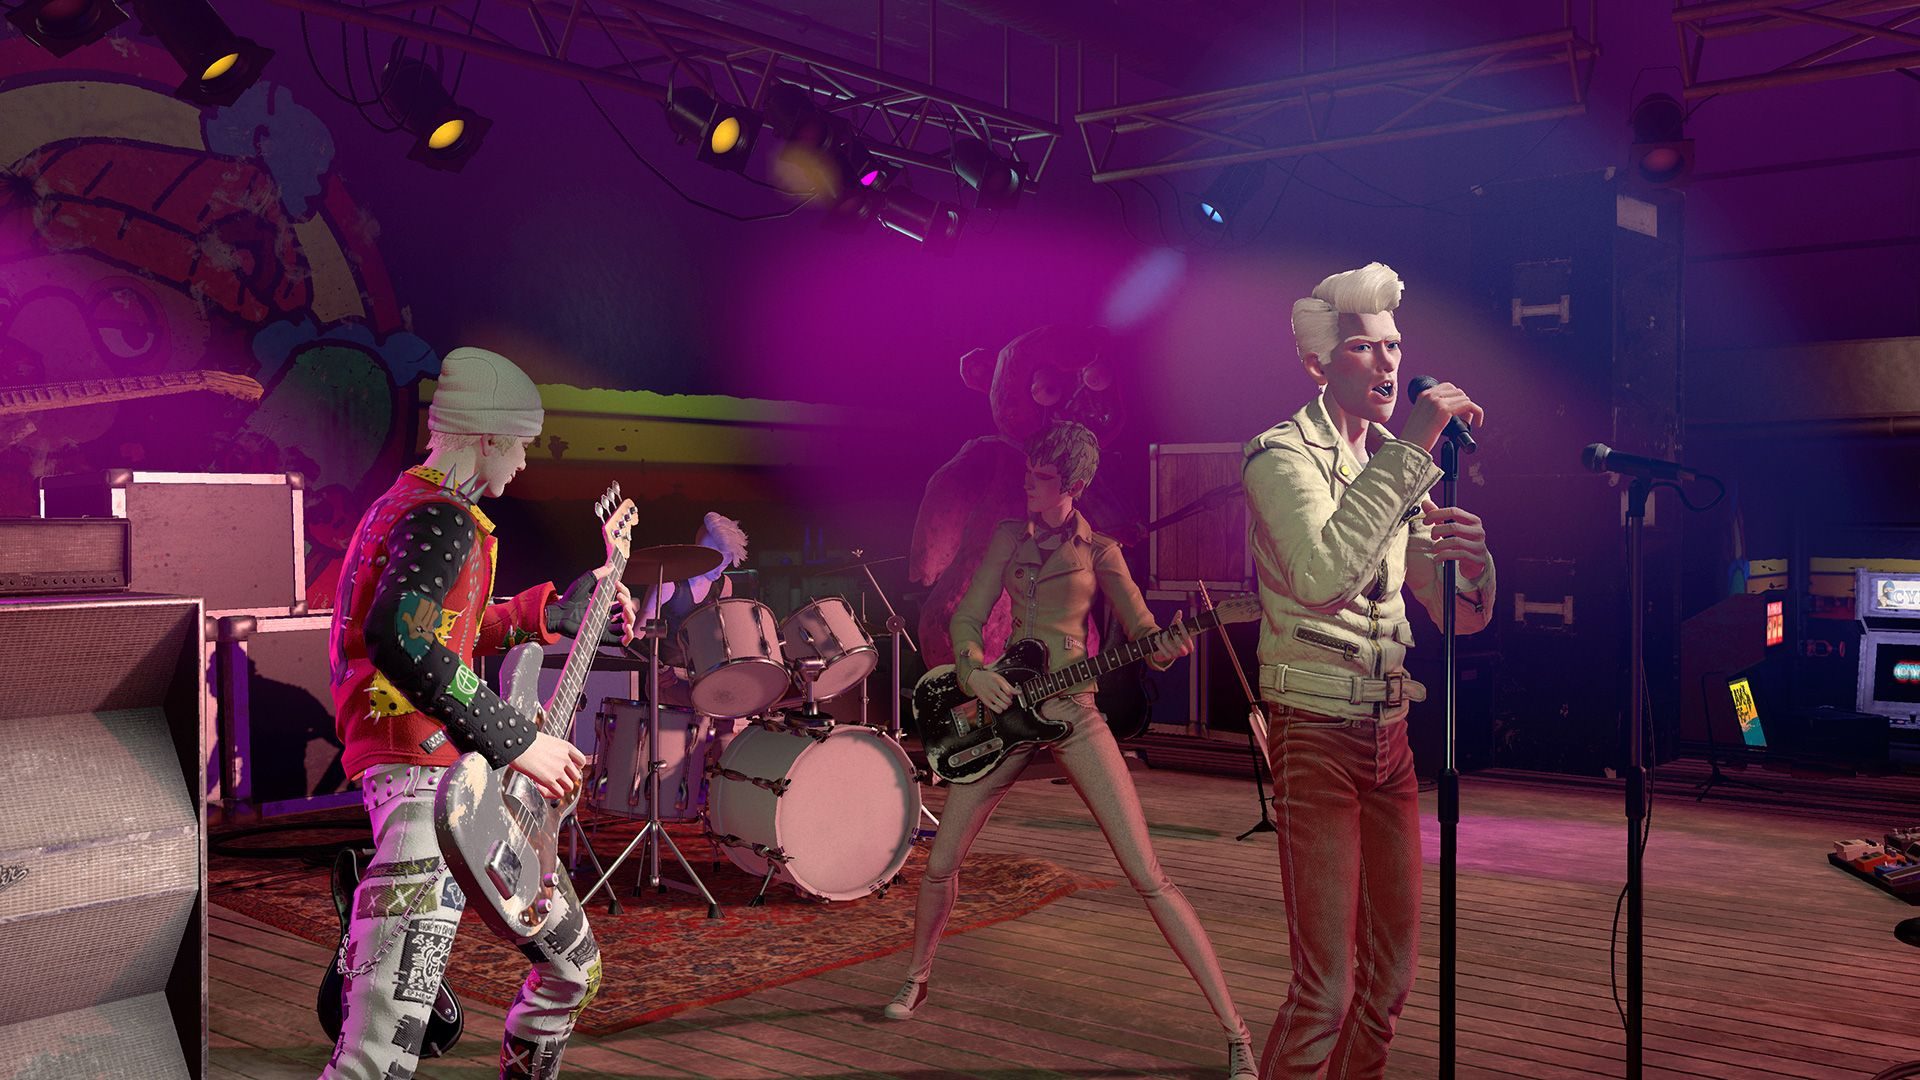 rock-band-rivals-rockudrama-gameplay-screenshot-01_1920.0